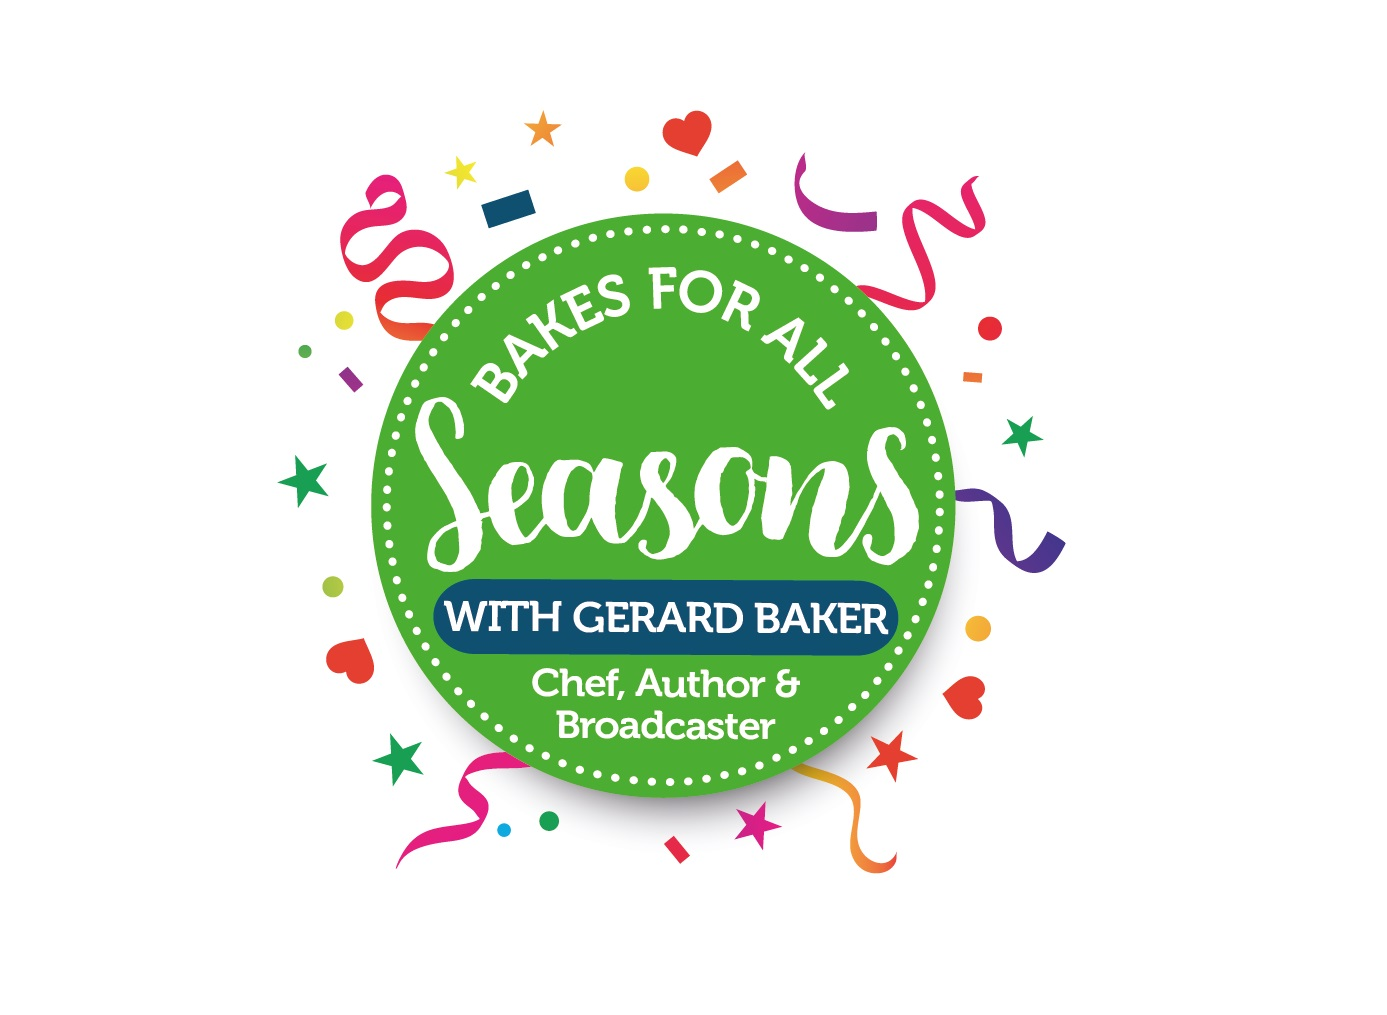 Bakes for All Seasons with Gerard Baker - Spring 1